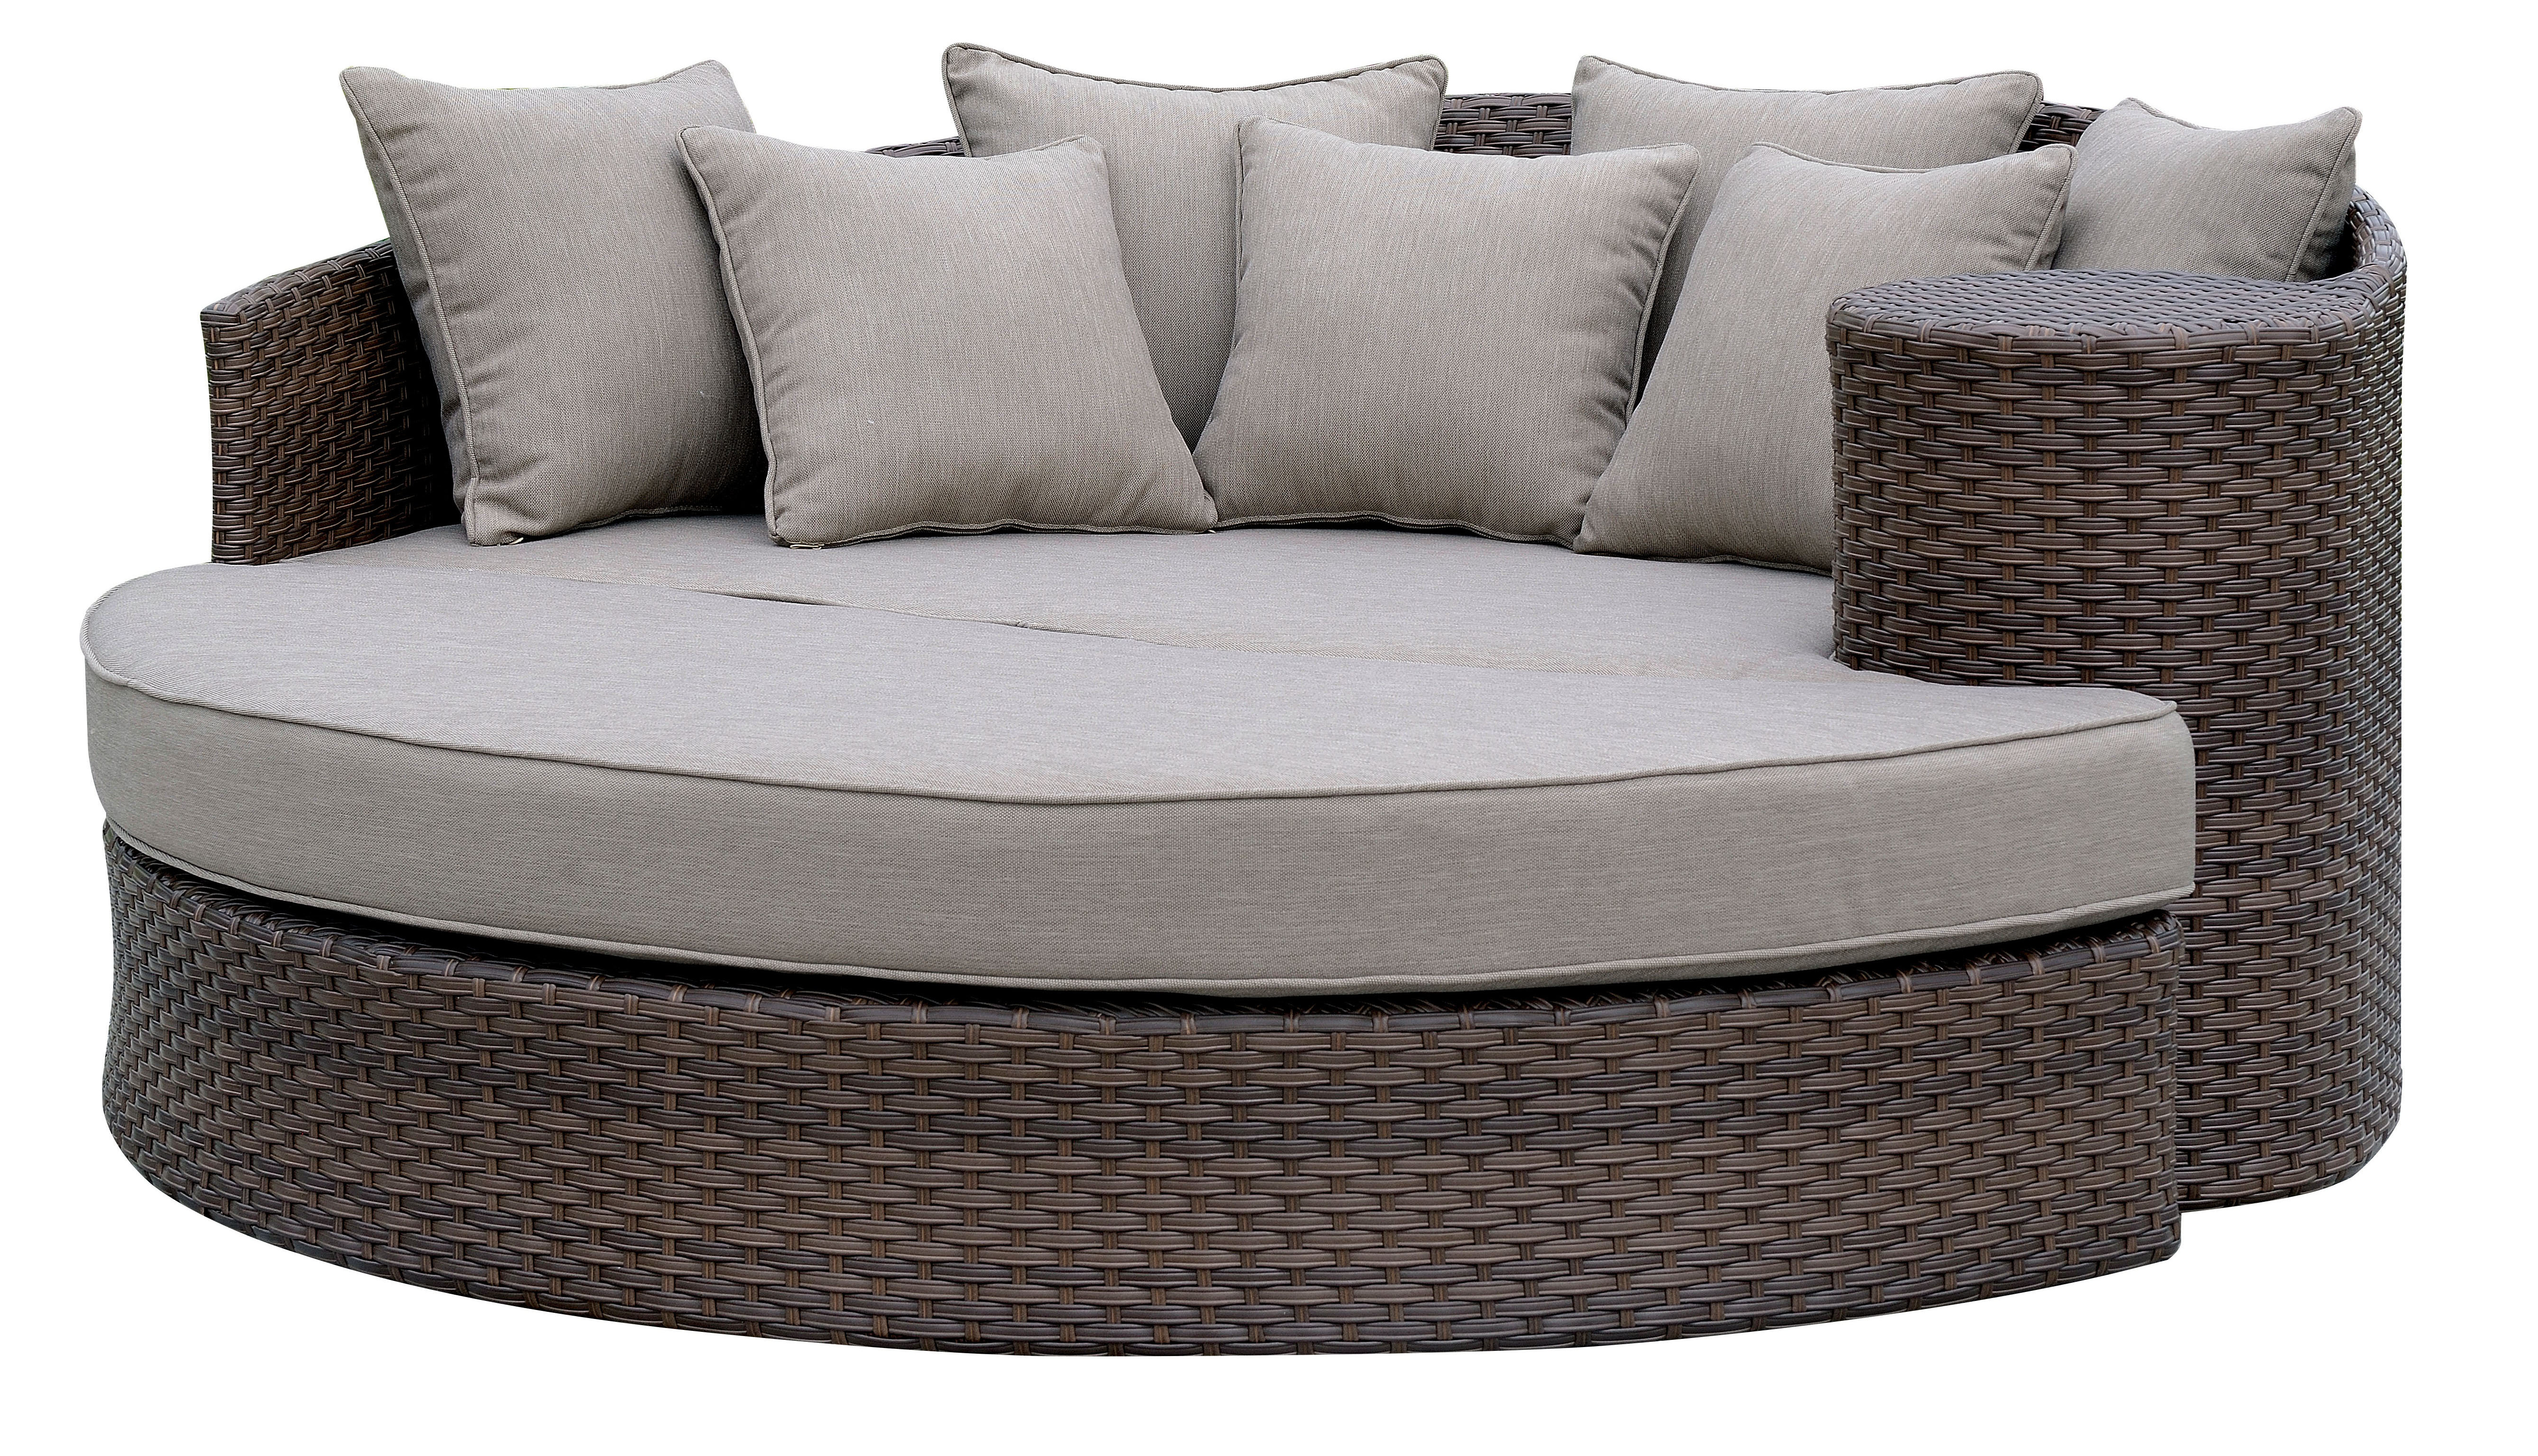 2020 Tripp Patio Daybeds With Cushions Within Whyte Contemporary Patio Daybed With Cushions (View 7 of 20)